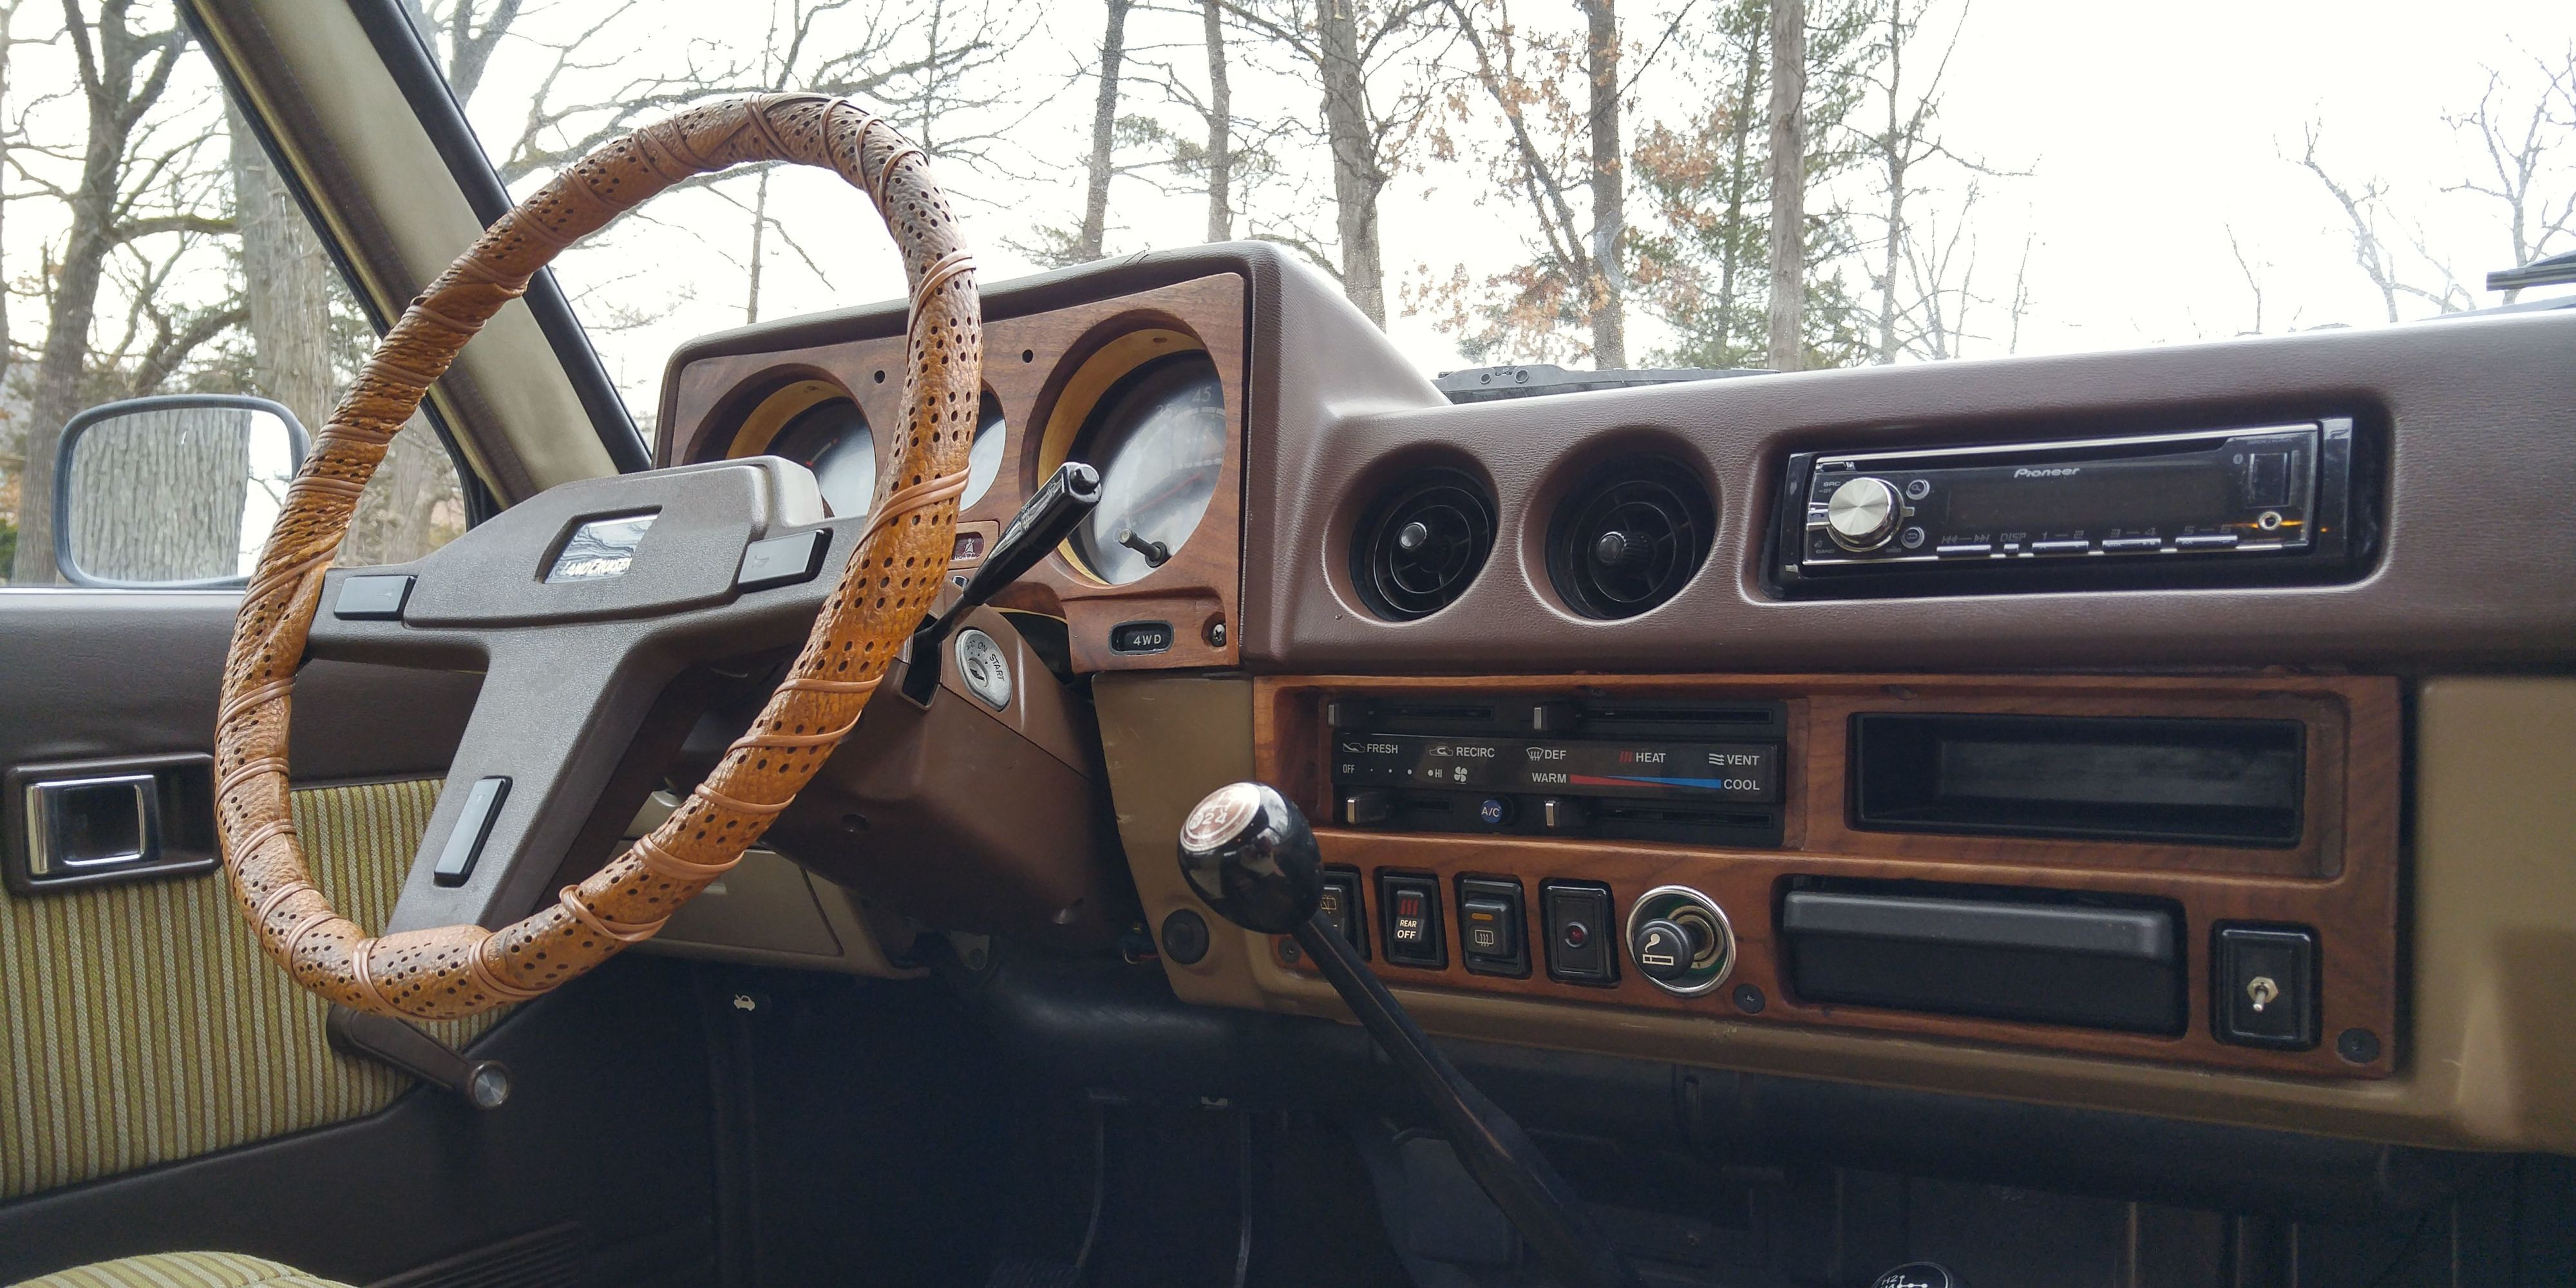 Wood Paneling Comes Standard In Many Luxury Cars And Is Sometimes An Option  If You Want To Pay Some Big Bucks. But What About Classic Cars And Trucks  That ...